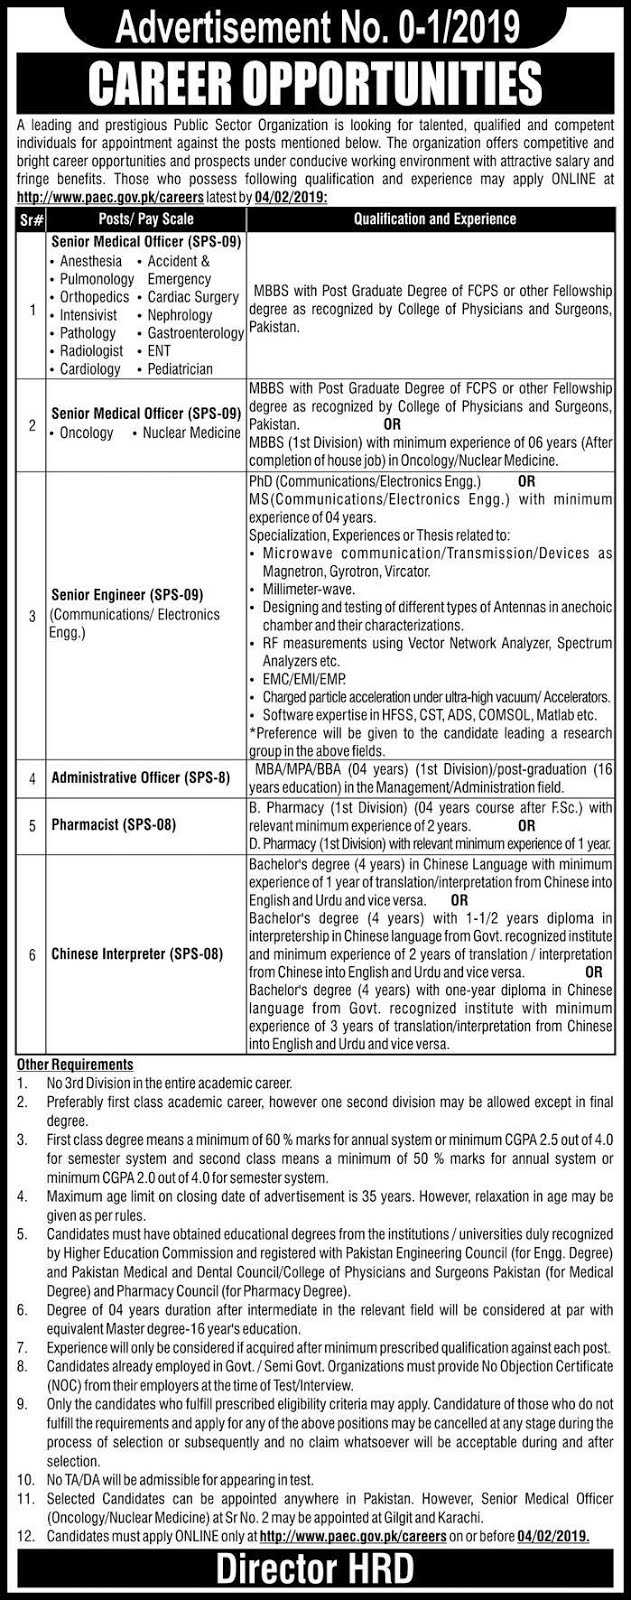 pakistan atomic energy jobs,pakistan atomic energy commission,pakistan atomic energy commission jobs,pakistan atomic energy jobs 2018,pakistan atomic energy commission jobs test papers,atomic energy jobs,pakistan atomic energy jobs 2019,pakistan atomic energy jobs in mianwali,jobs in pakistan,atomic energy commission jobs 2018,latest pakistan atomic energy jobs 2019,atomic energy